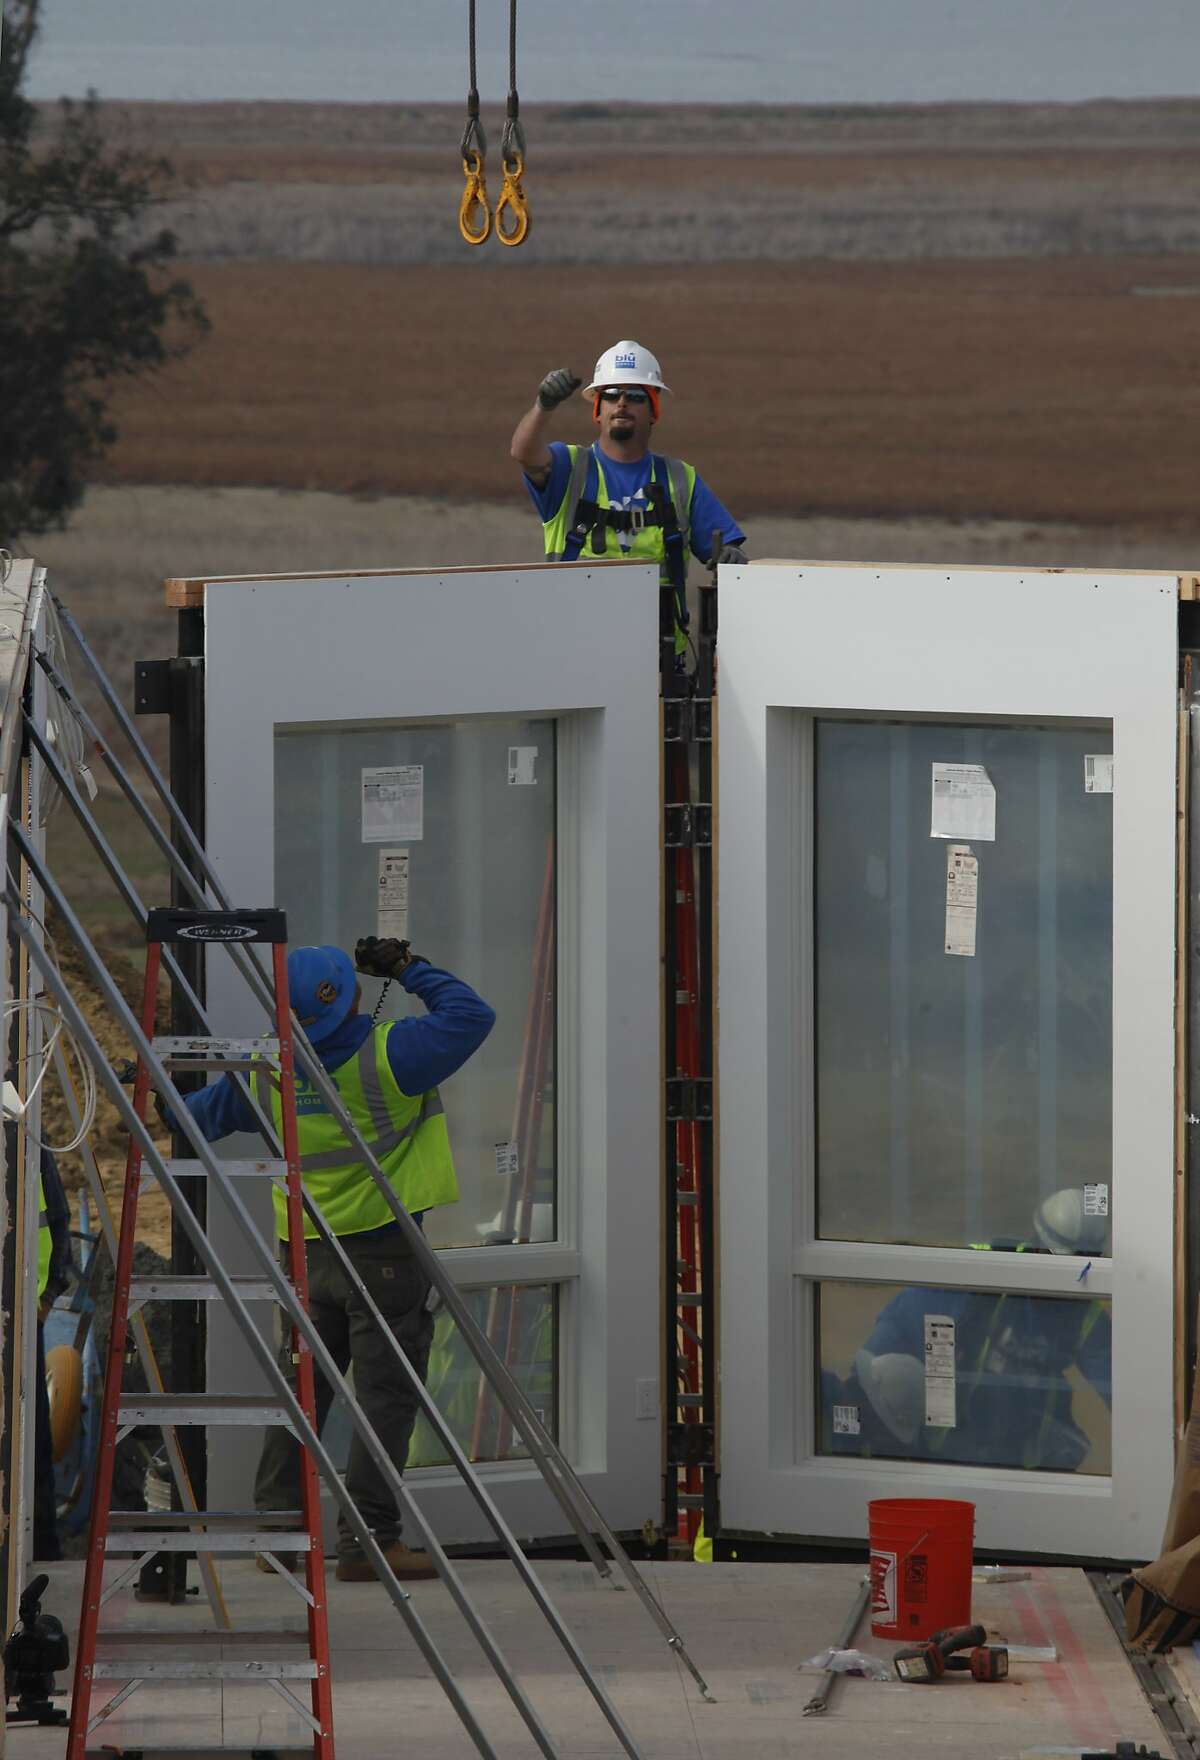 A Blu Homes Design Center Breezehouse constructed in Mare Island, Vallejo, Calif., on Monday, January 27, 2014.